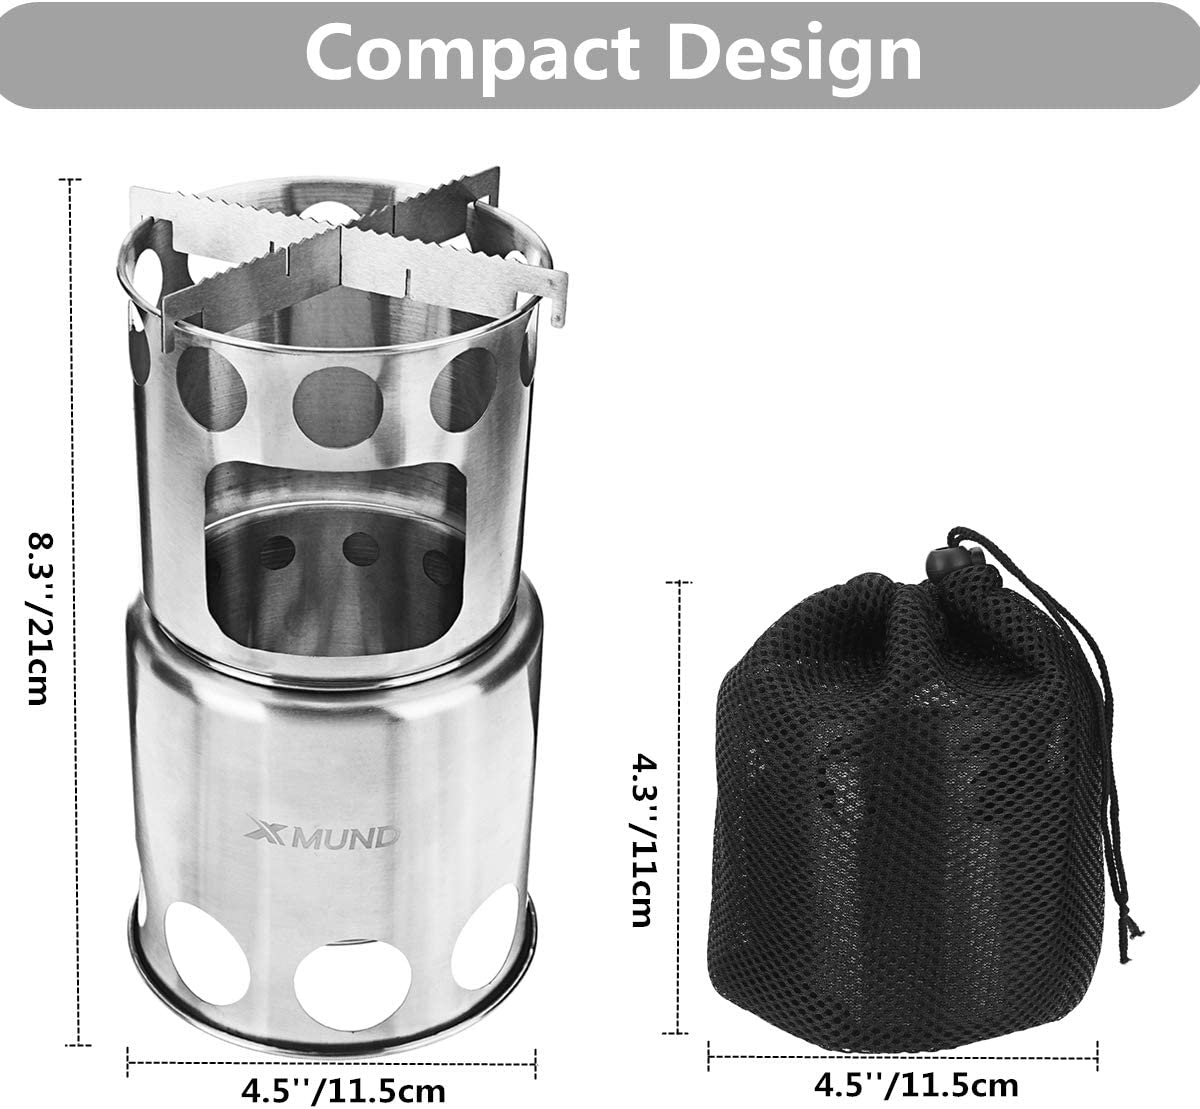 Camping Stove Camp Wood Stove Backpacking Compact and Lightweight Camping Stove for Picnic BBQ Camp Hiking Outdoor Traveling Xmund Stainless Steel Potable Wood Burning Stoves